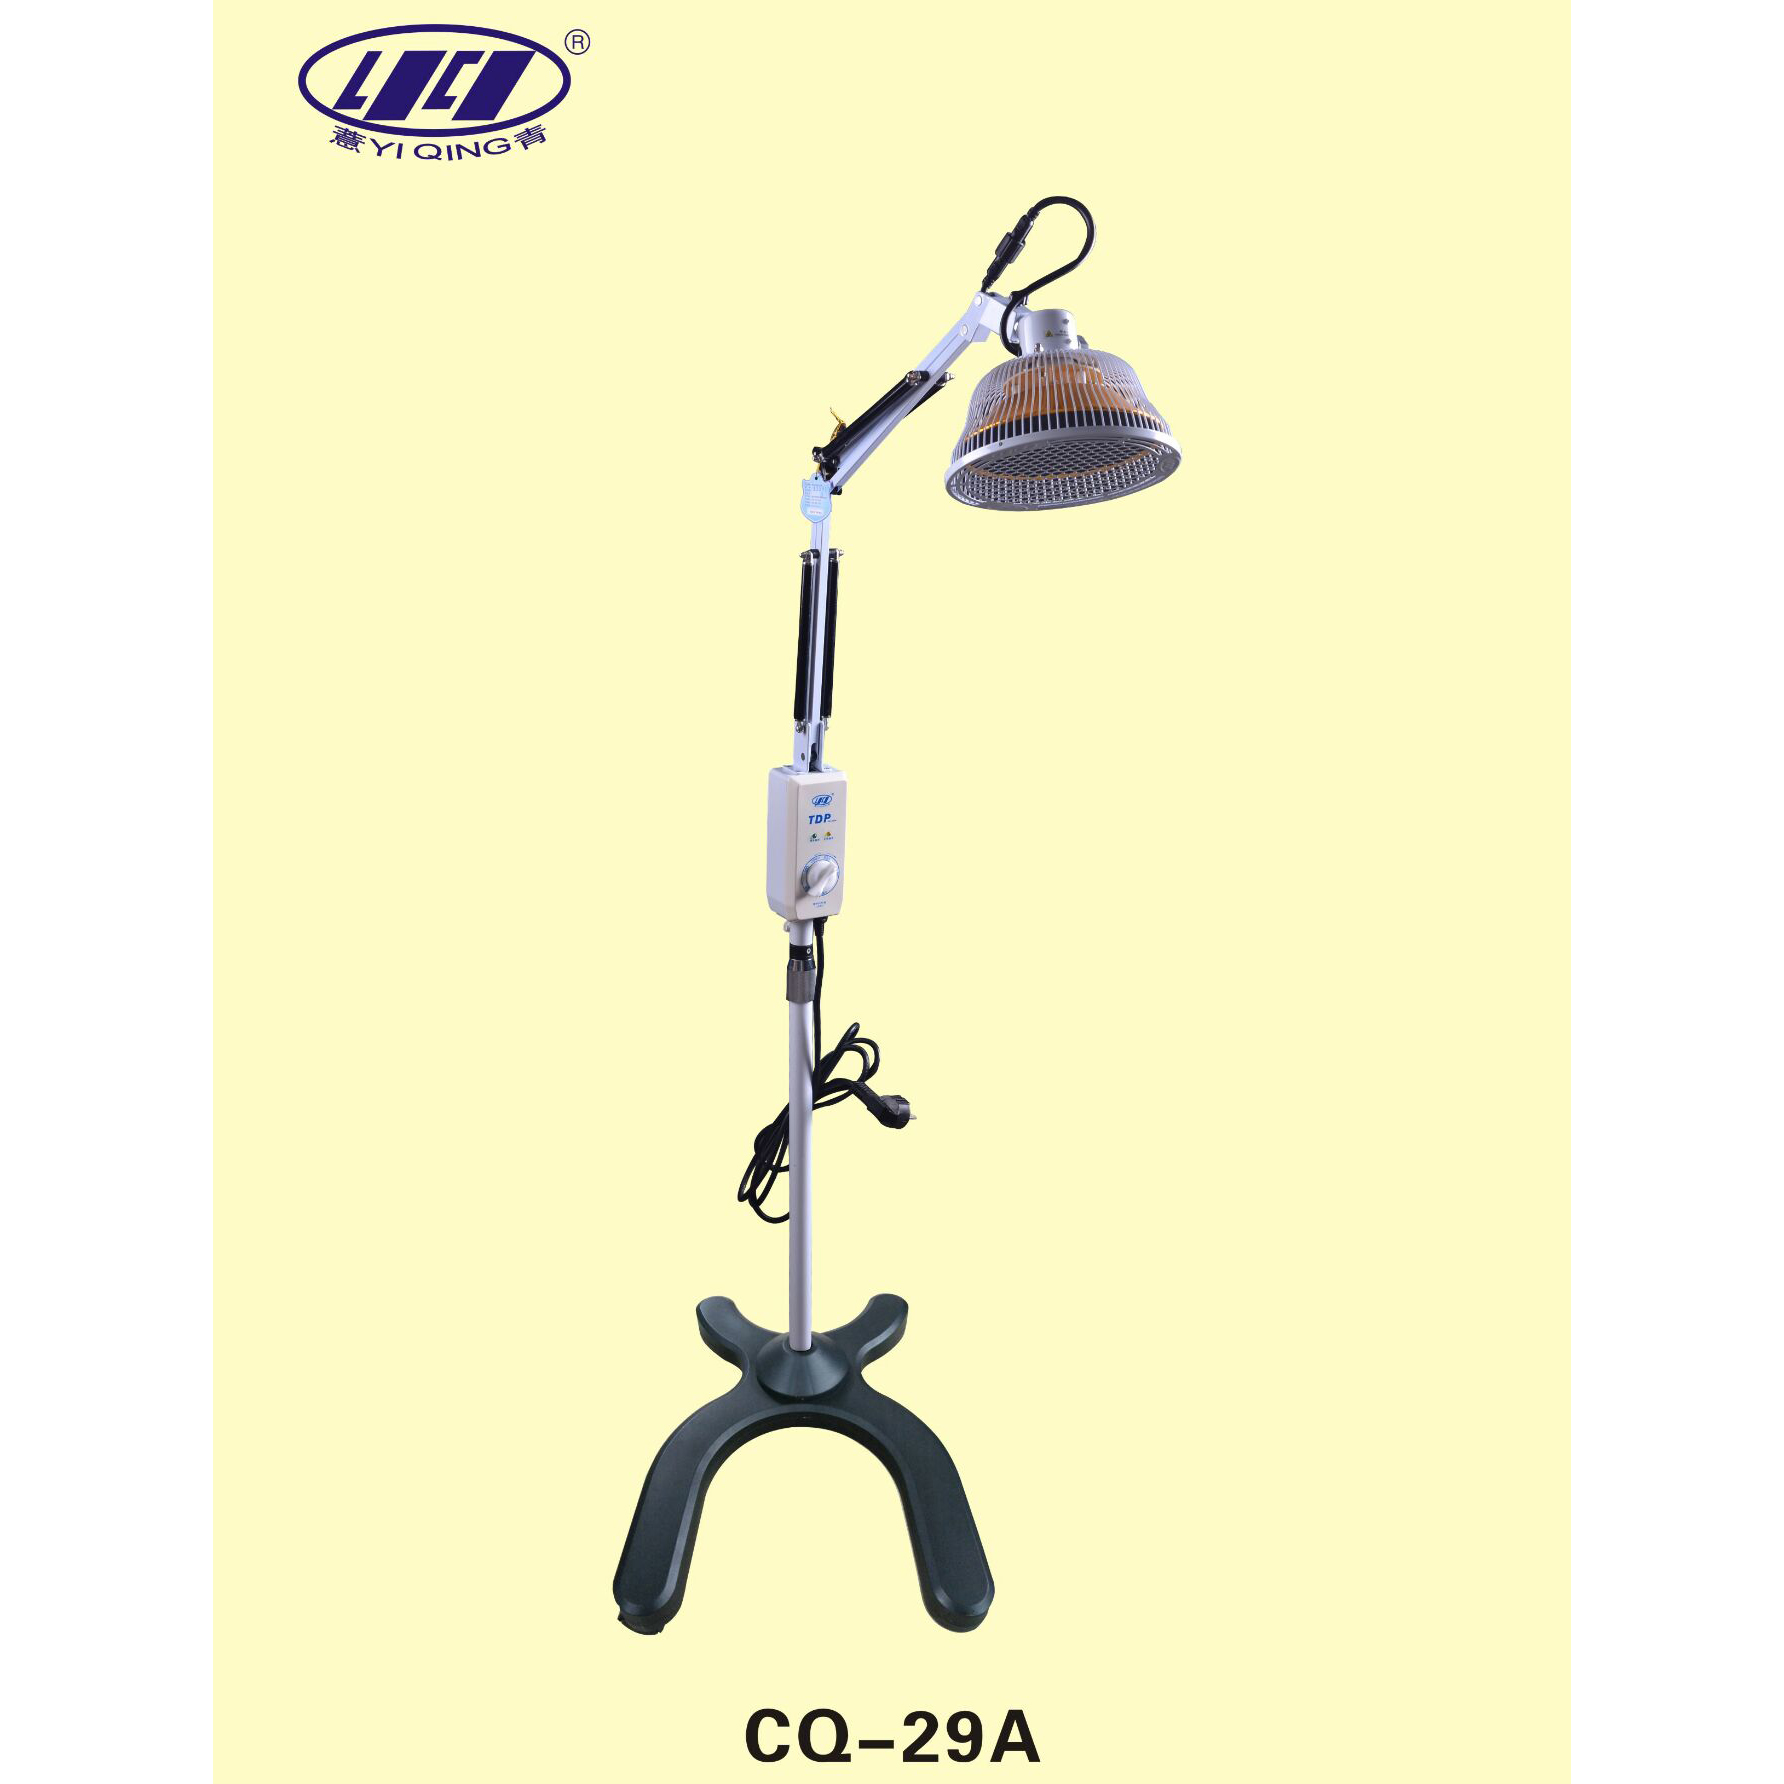 TDP Lamp Simple Floor Standing Infrared Heat Adjustable Indepentent Head NEW